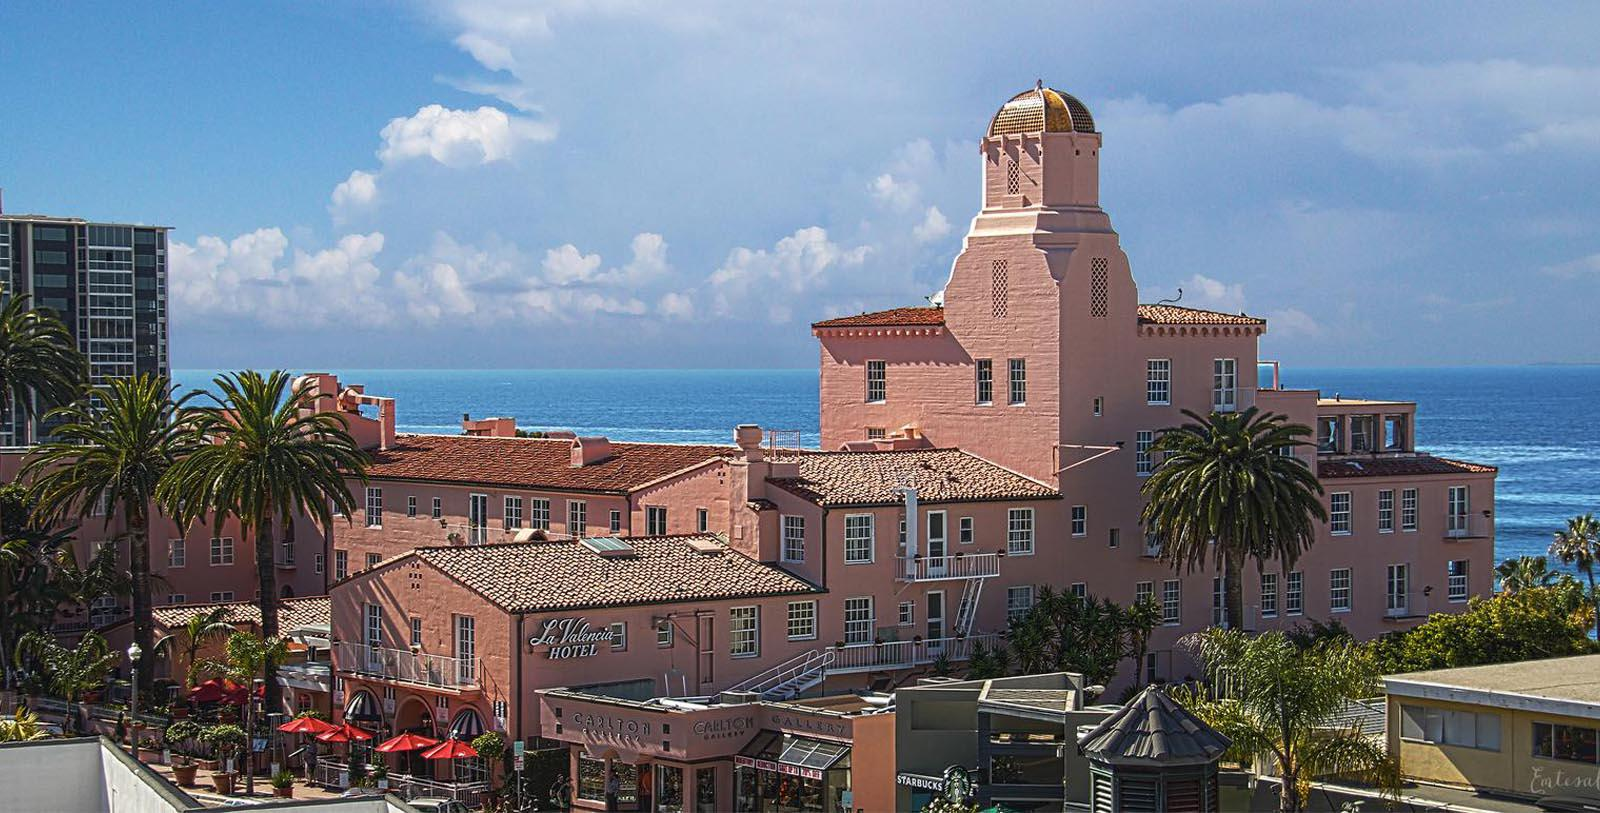 Image of Exterior & Ocean View, La Valencia Hotel in La Jolla, Califronia, 1926, Member of Historic Hotels of America, Discover